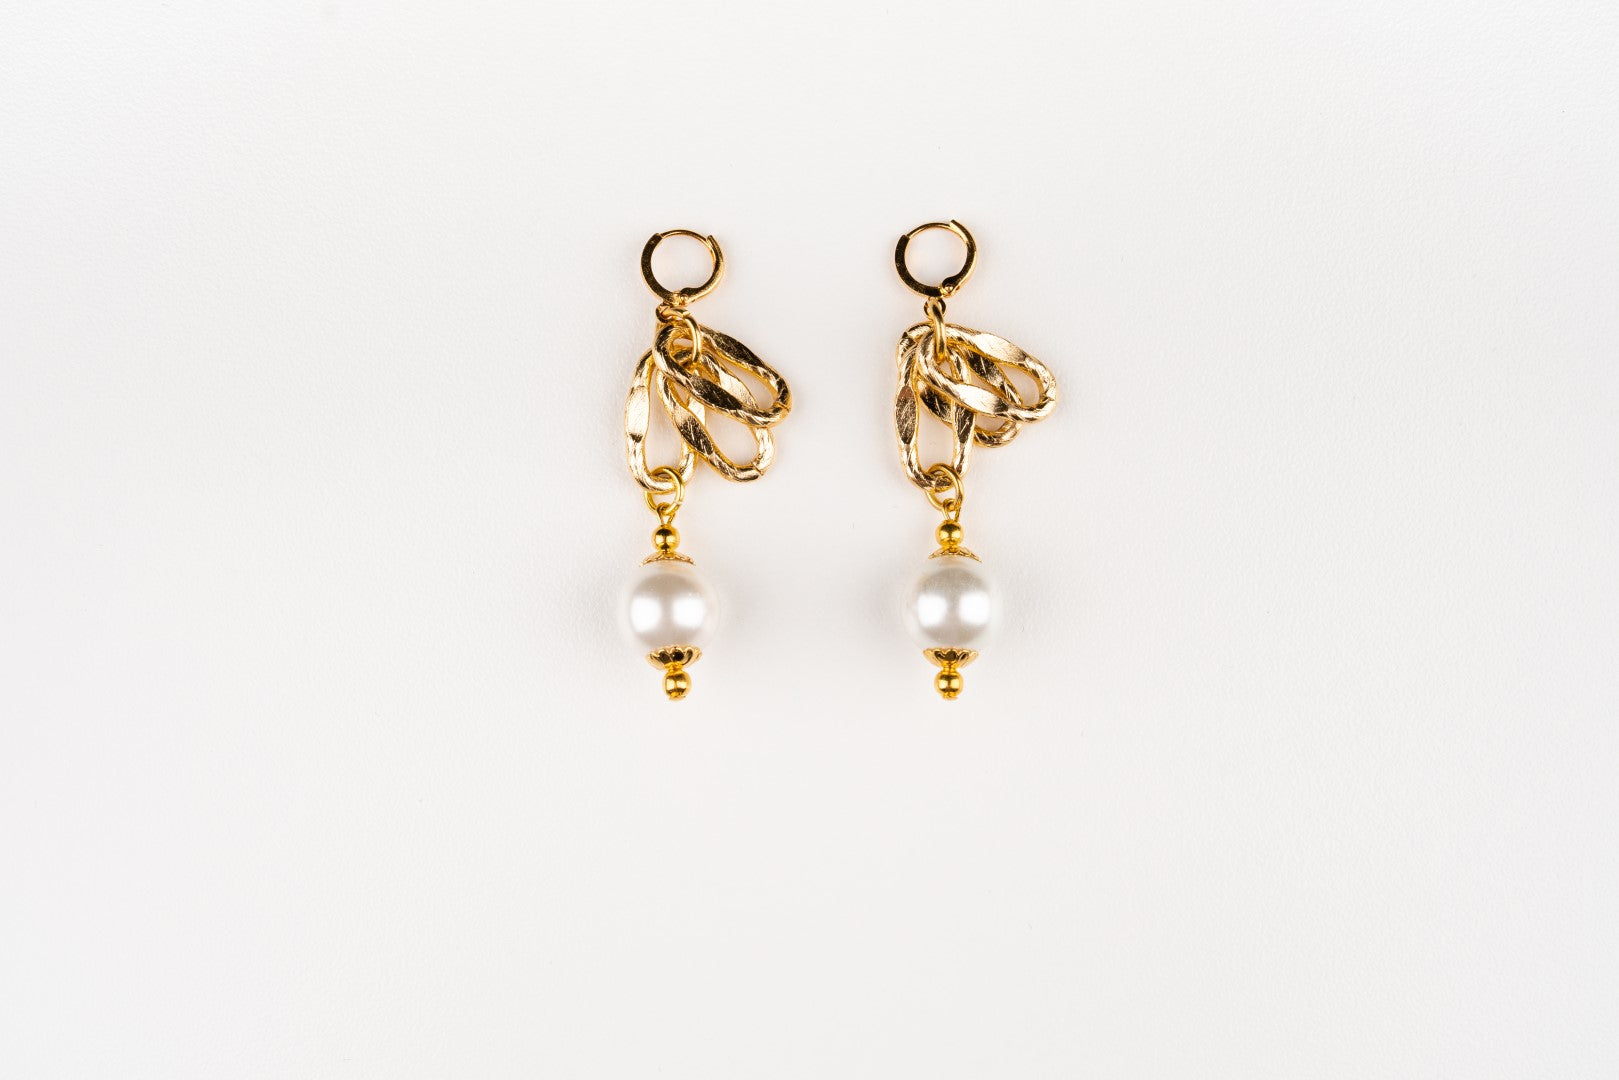 Carolily Finery earrings made from Gold filled aluminum links and Swarovski crystal pearls